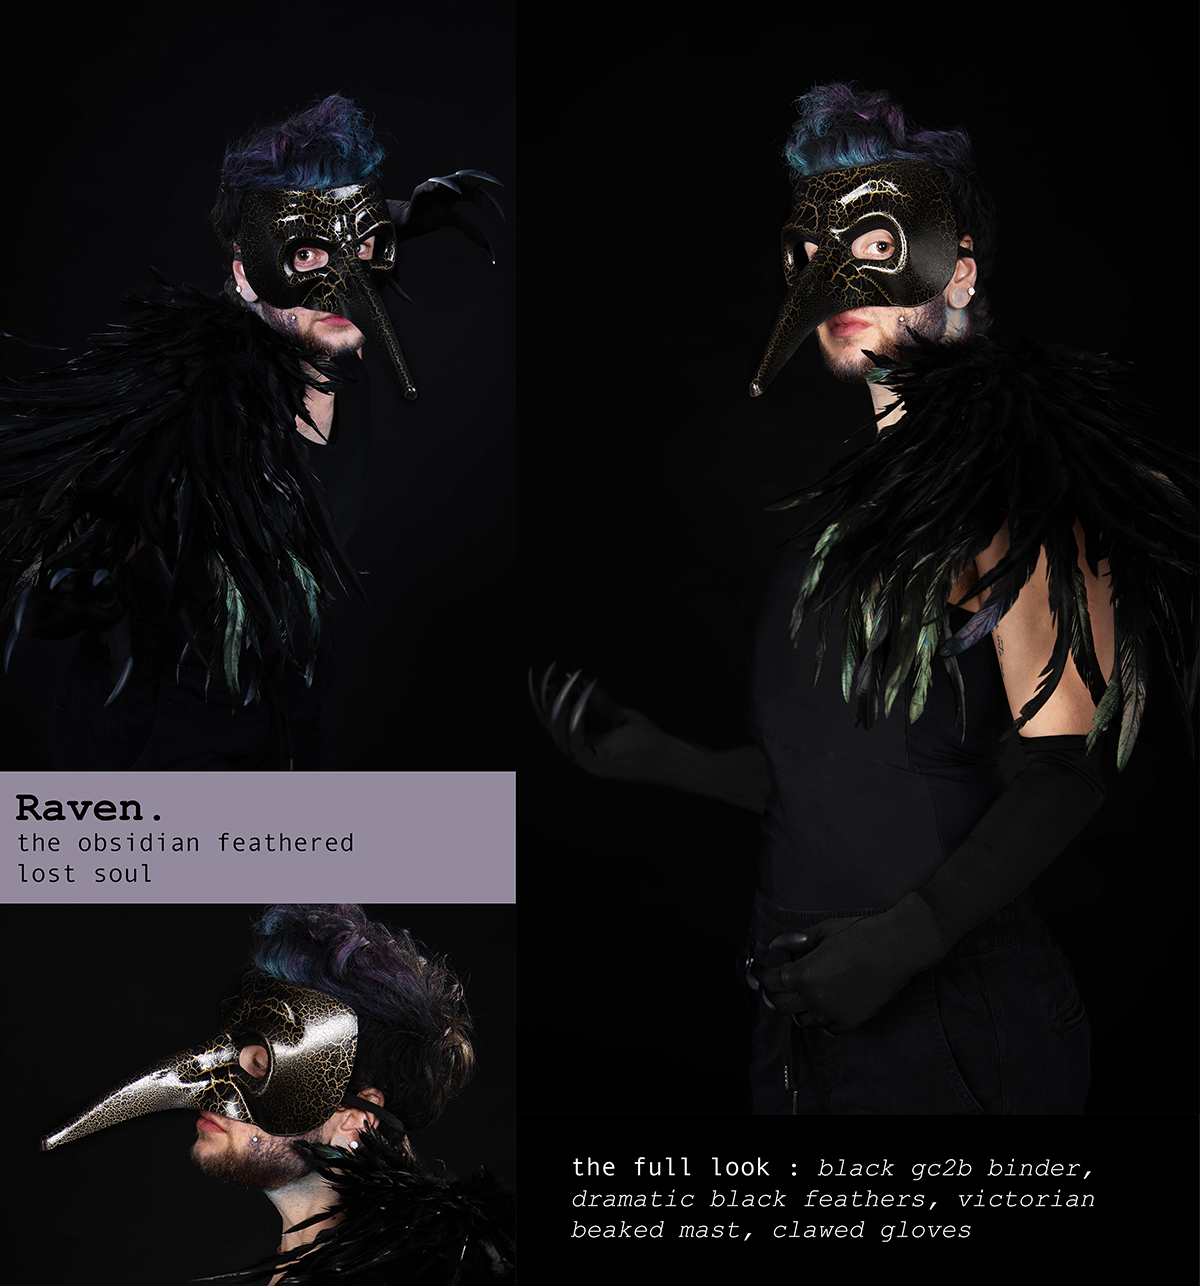 Raven. the obsidian feathered lost soul. the full look: Black gc2b Binder, Dramatic Black Feathers, Victorian Beaked Mast, Clawed Gloves